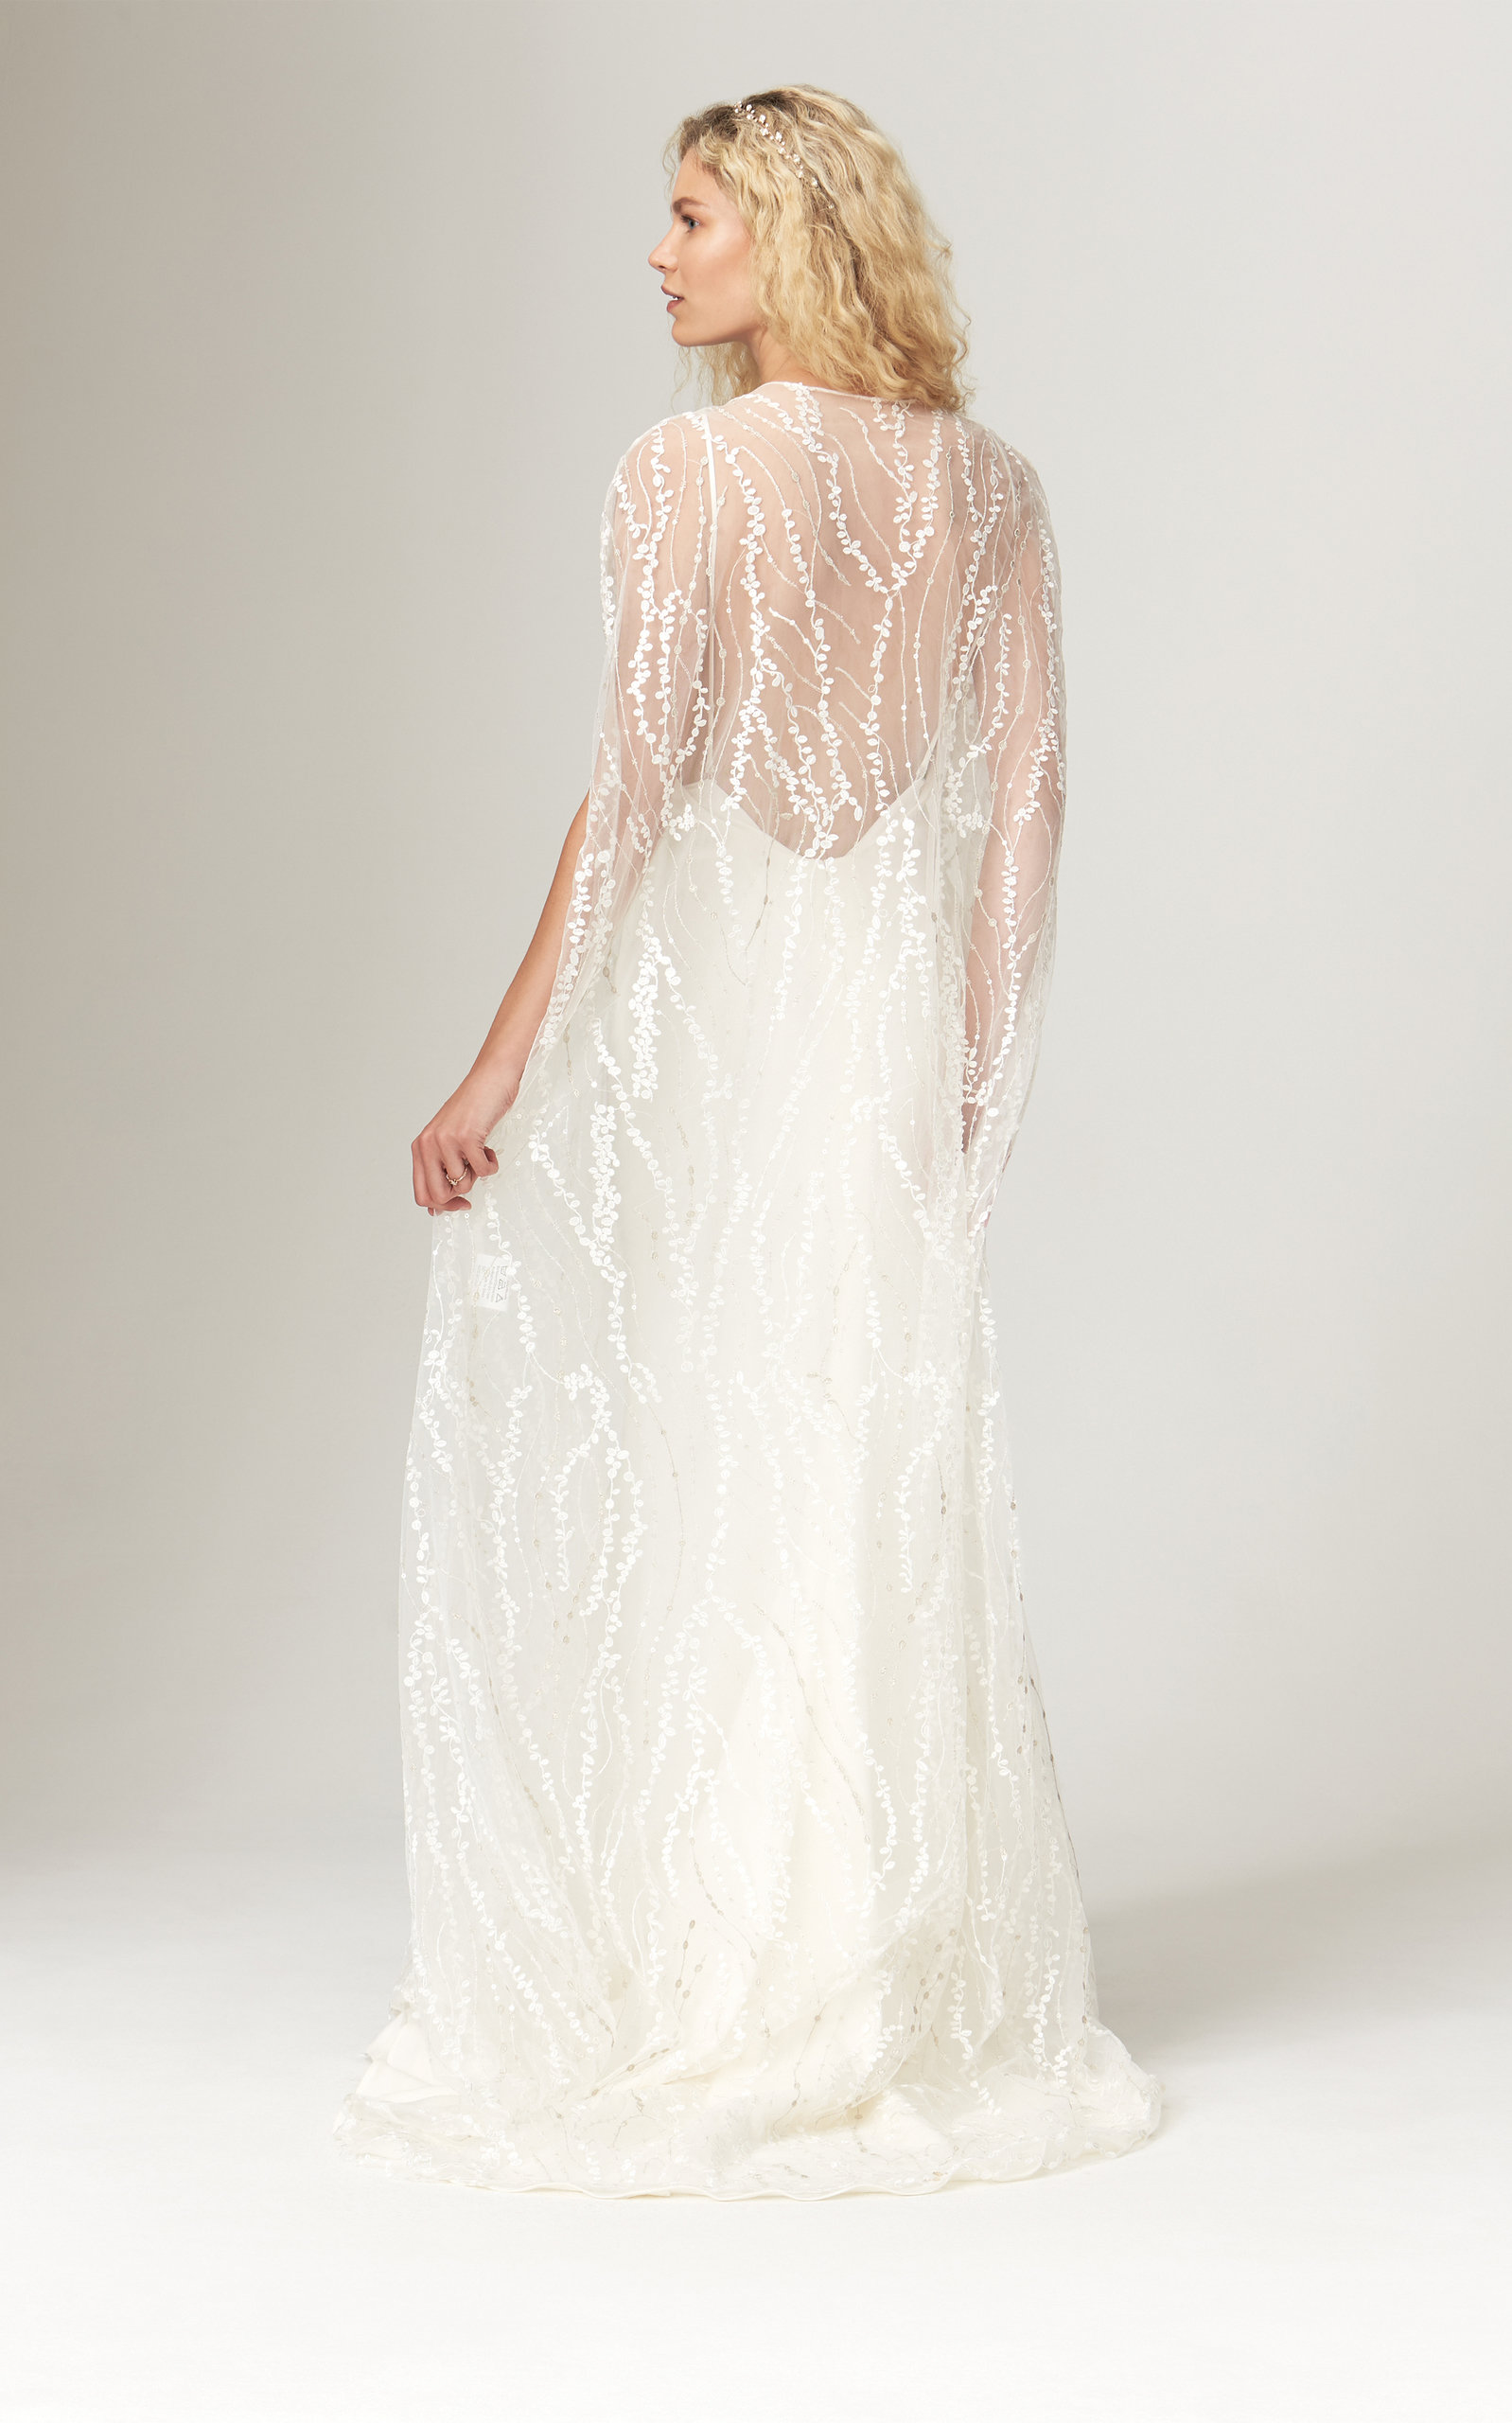 Savannah Miller - Inca Cape With All-Over Vine Lace Detail